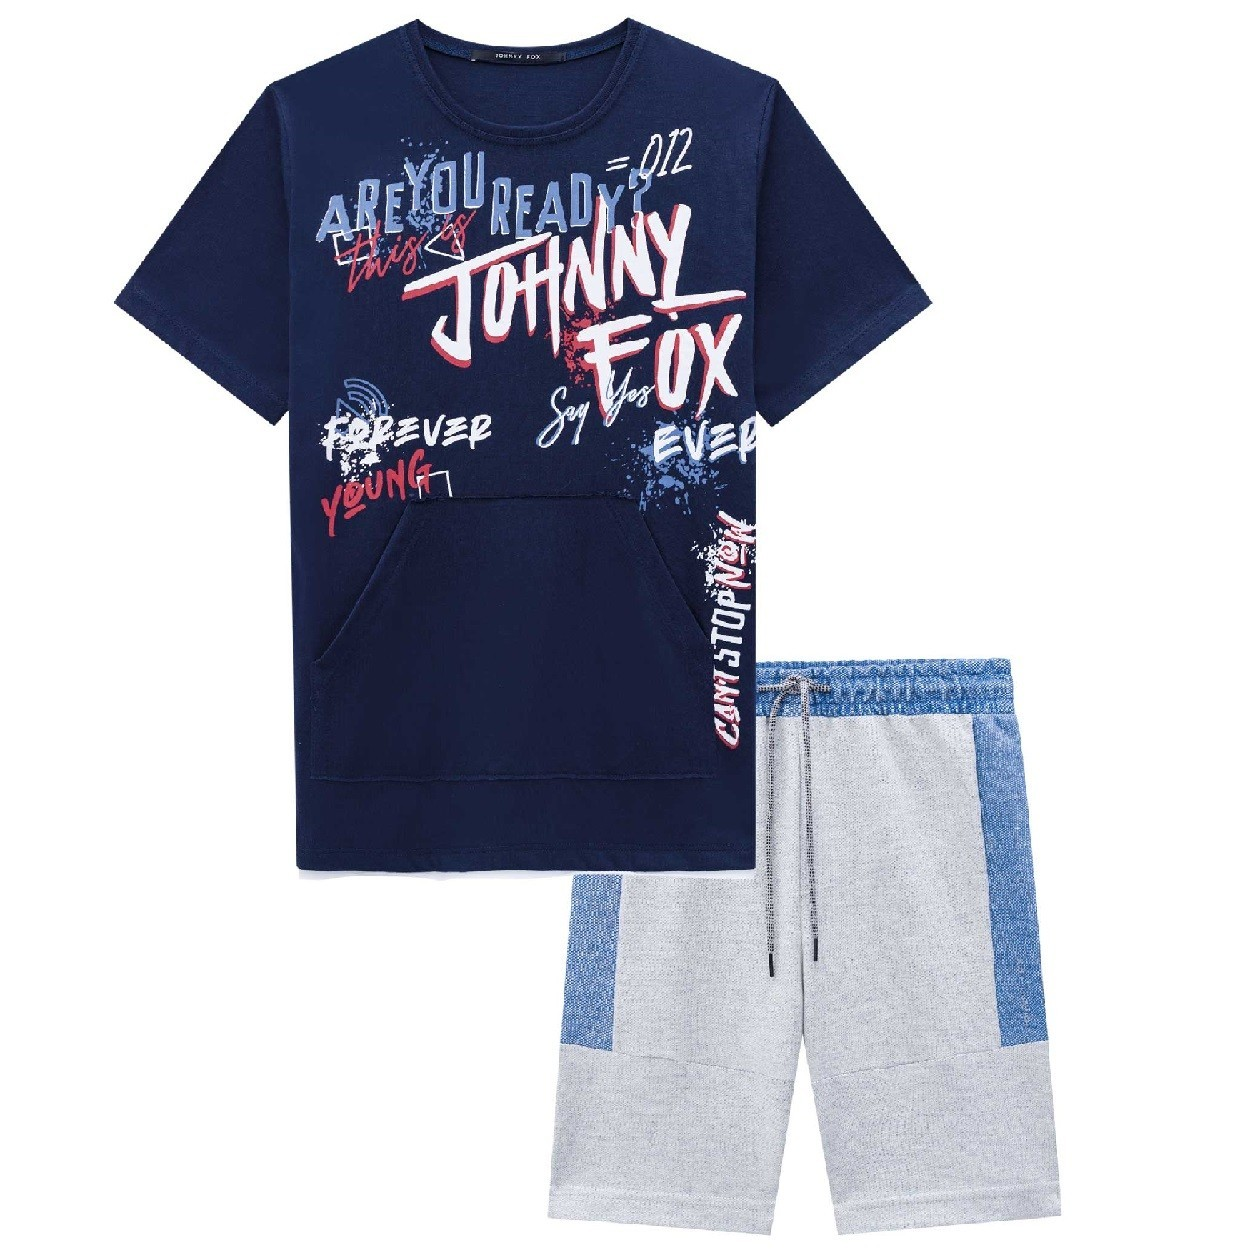 CONJUNTO MASCULINO MALHA CAMISETA MARINHO 'ARE YOU READY?' + BERMUDA CINZA MESCLA - JOHNNY FOX